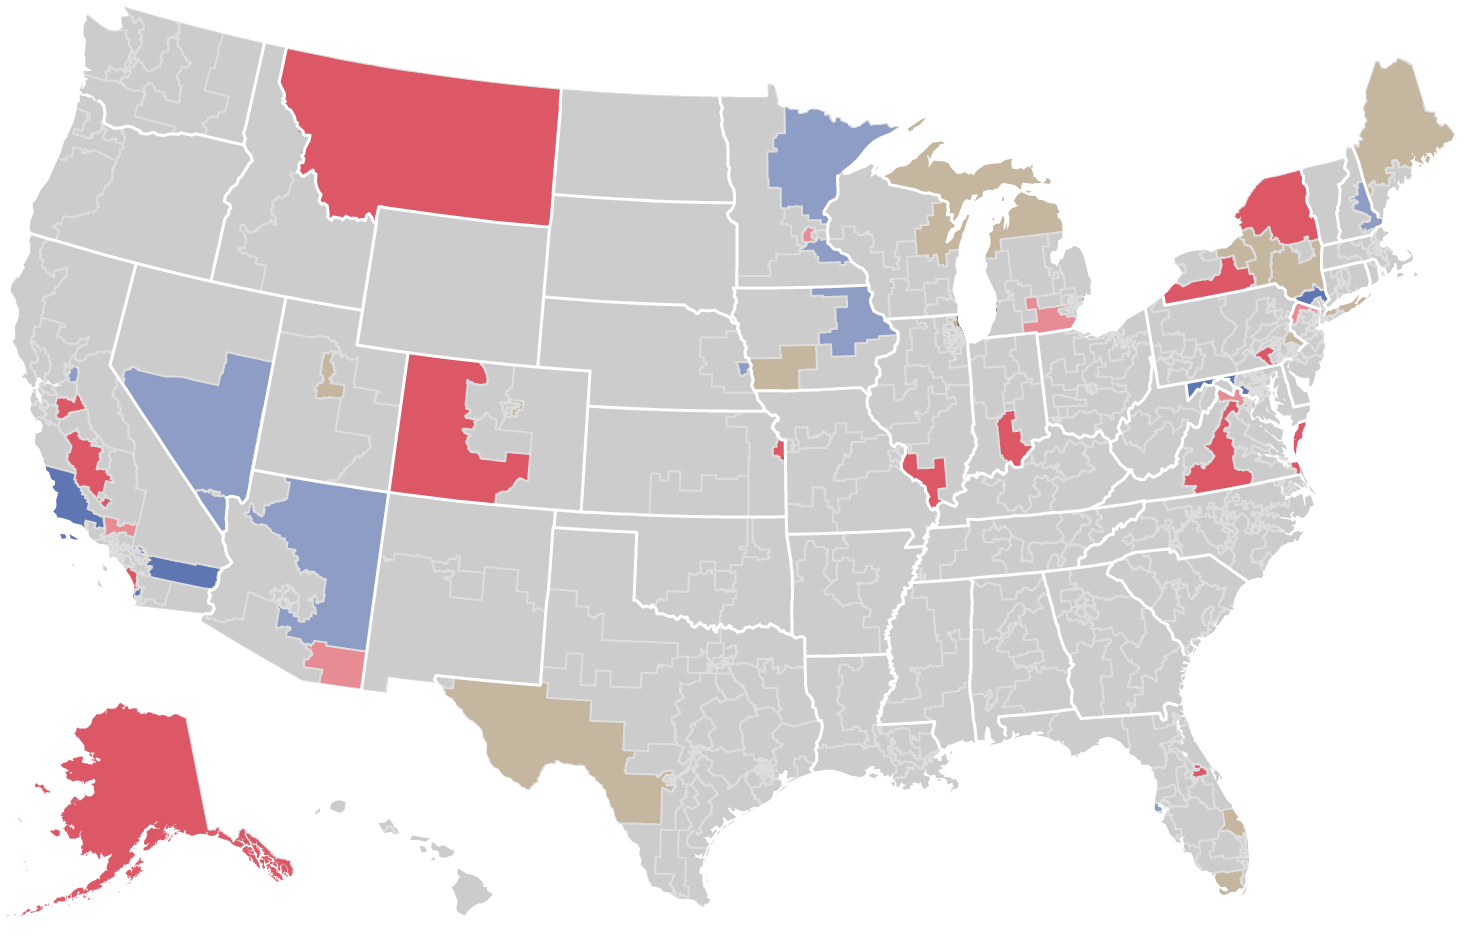 competitive house districts on map